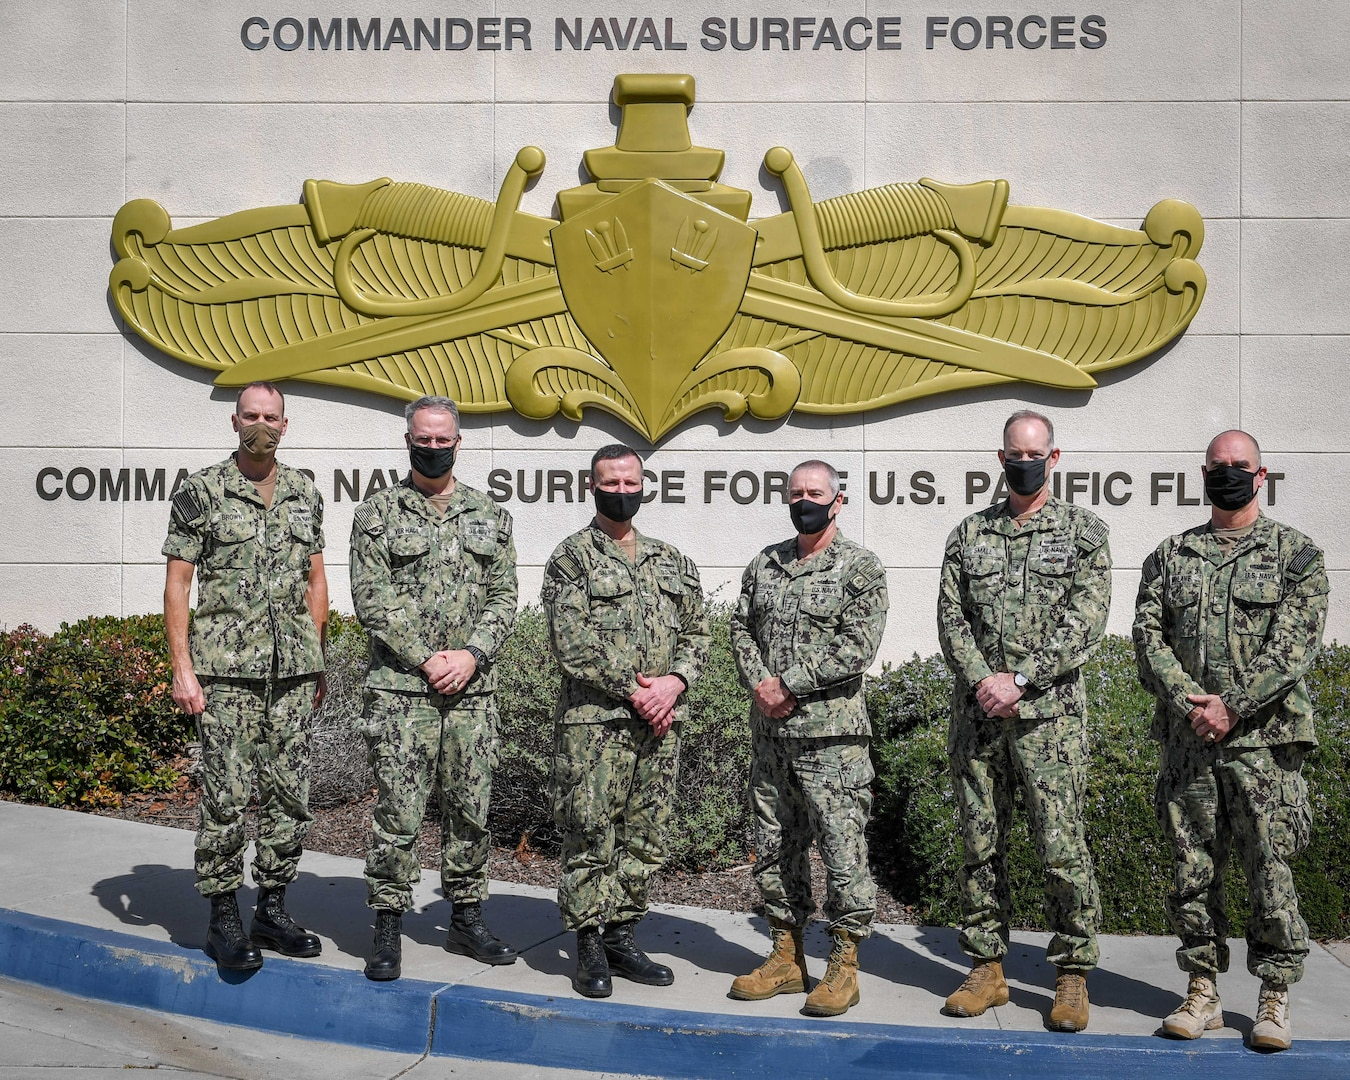 Commander, Naval Sea Systems Command (NAVSEA) and Commander, Naval Surface Force, U.S. Pacific Fleet (CNSP) hosted a Maintenance and Modernization Summit, Feb. 25-26 to ensure continued readiness of the U.S. Navy's surface fleet.